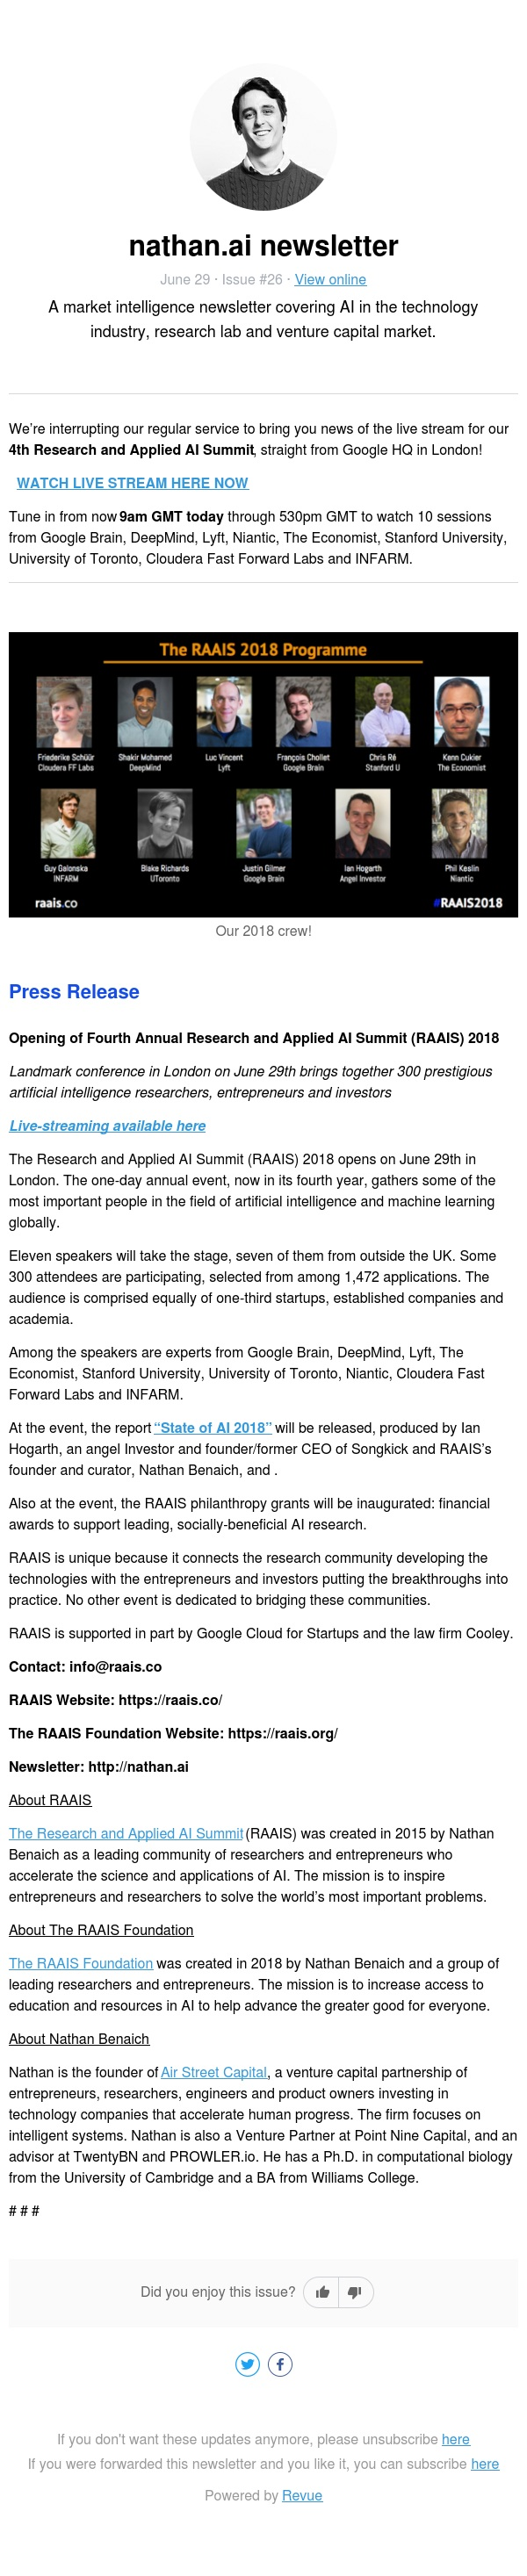 📺*Live stream* NOW: 4th Research and Applied AI Summit